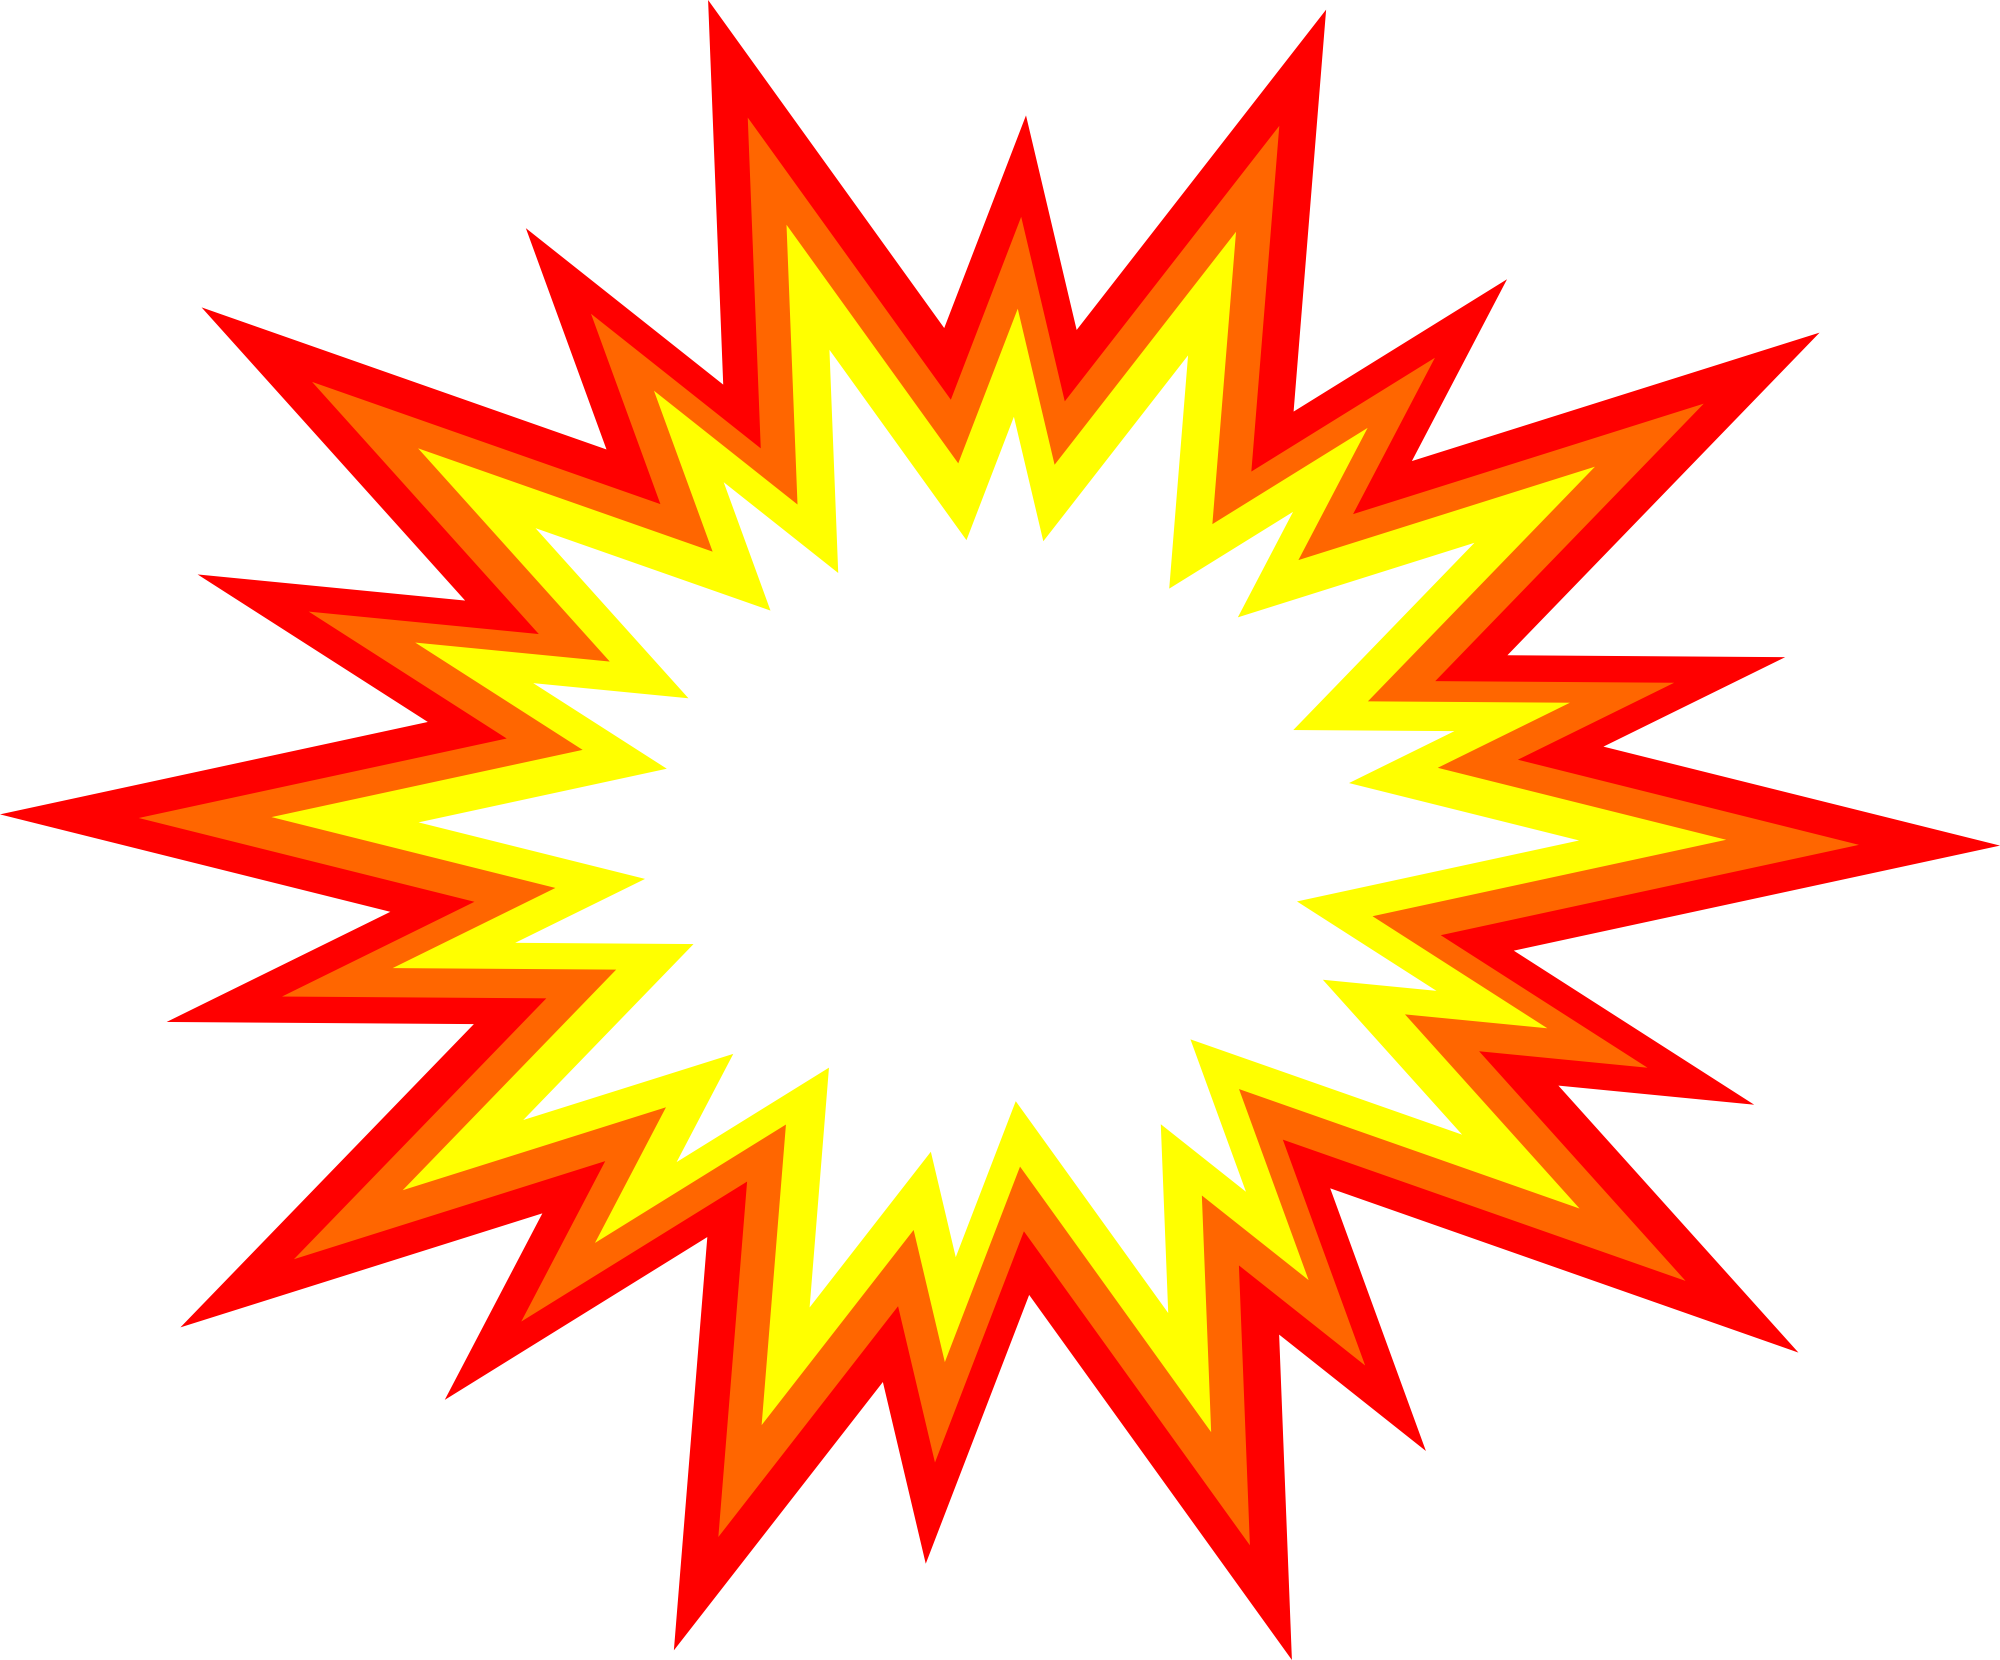 Transparent clipart explosion. Starburst comic vector